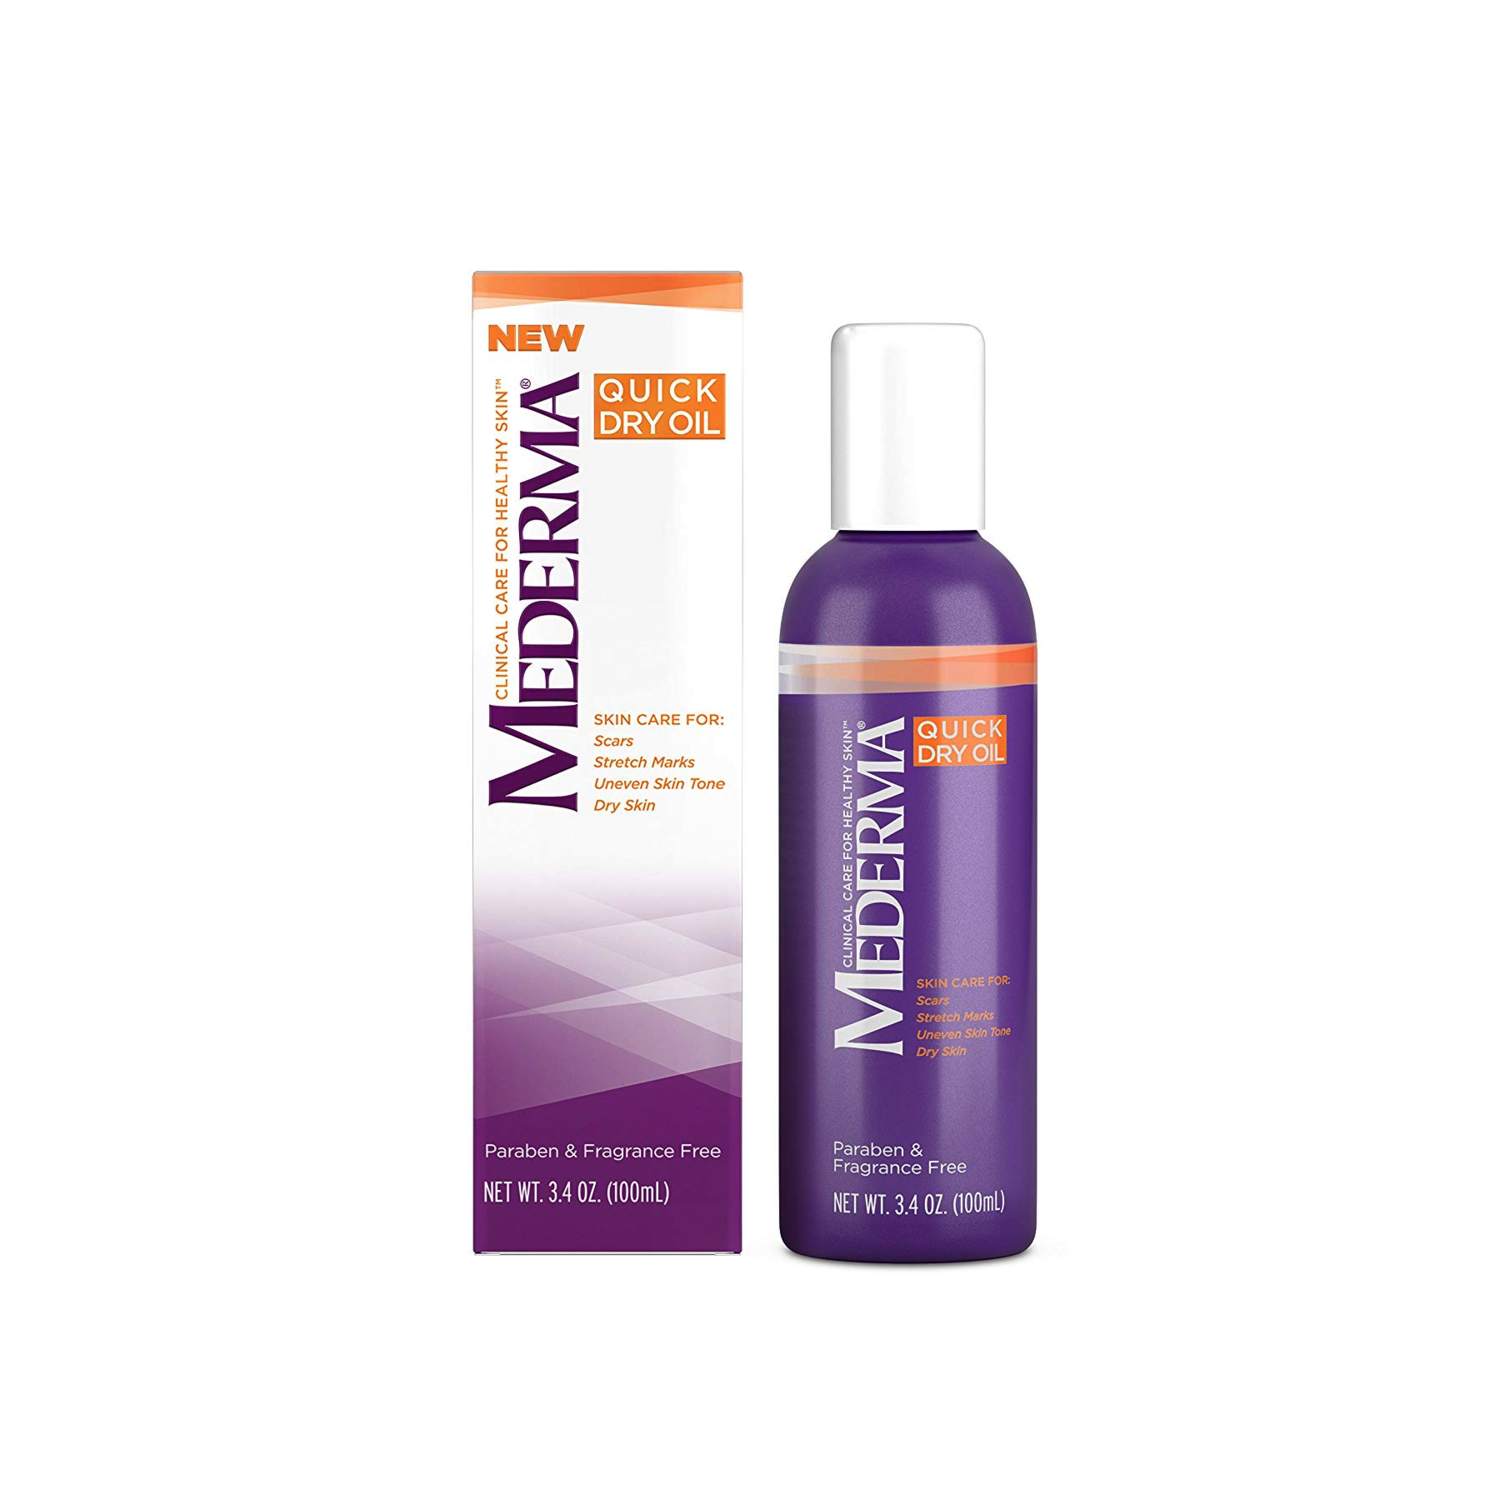 Mederma Quick Dry Oil For Scars, Stretchmarks, Uneven Skin Tone and Dry Skin 3.4 ounce